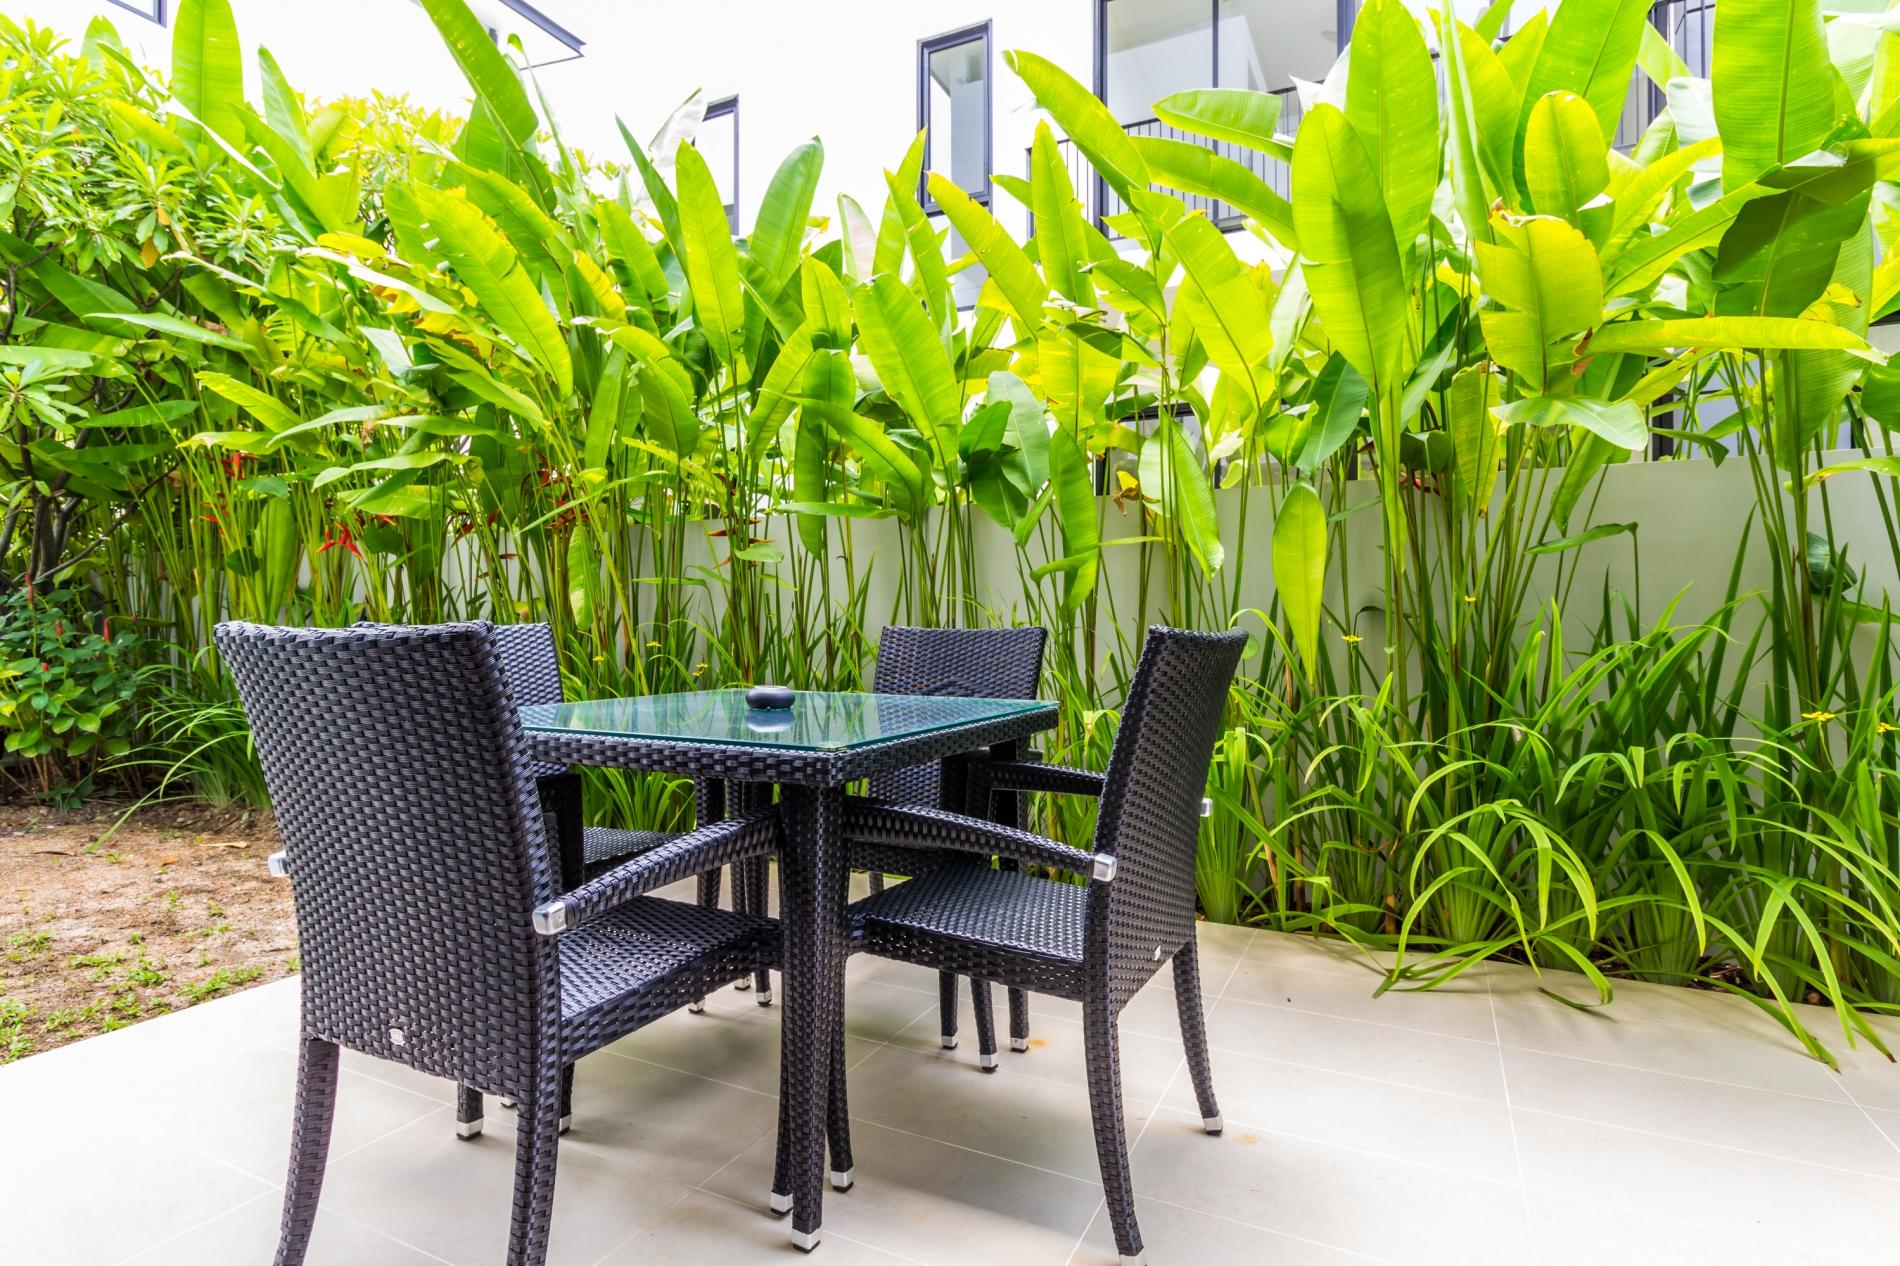 Apartment LP101 - Private rooftop pool villa in Laguna for 9 people  near restaurants and shops photo 20176192